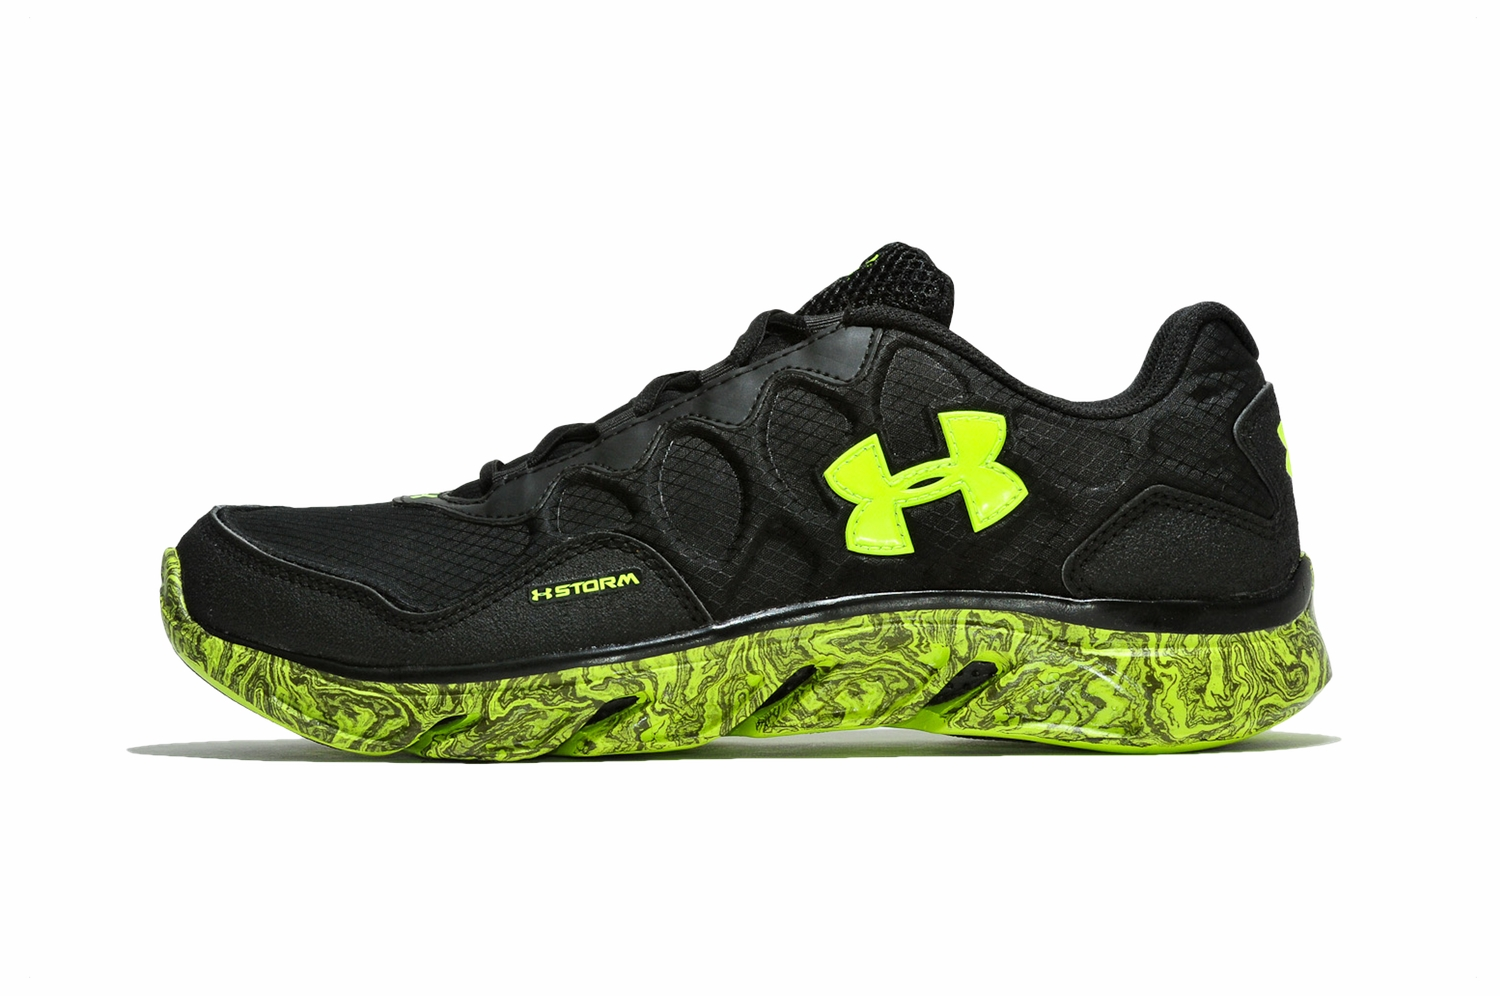 under-armour-spine-rebel-storm-black-volt